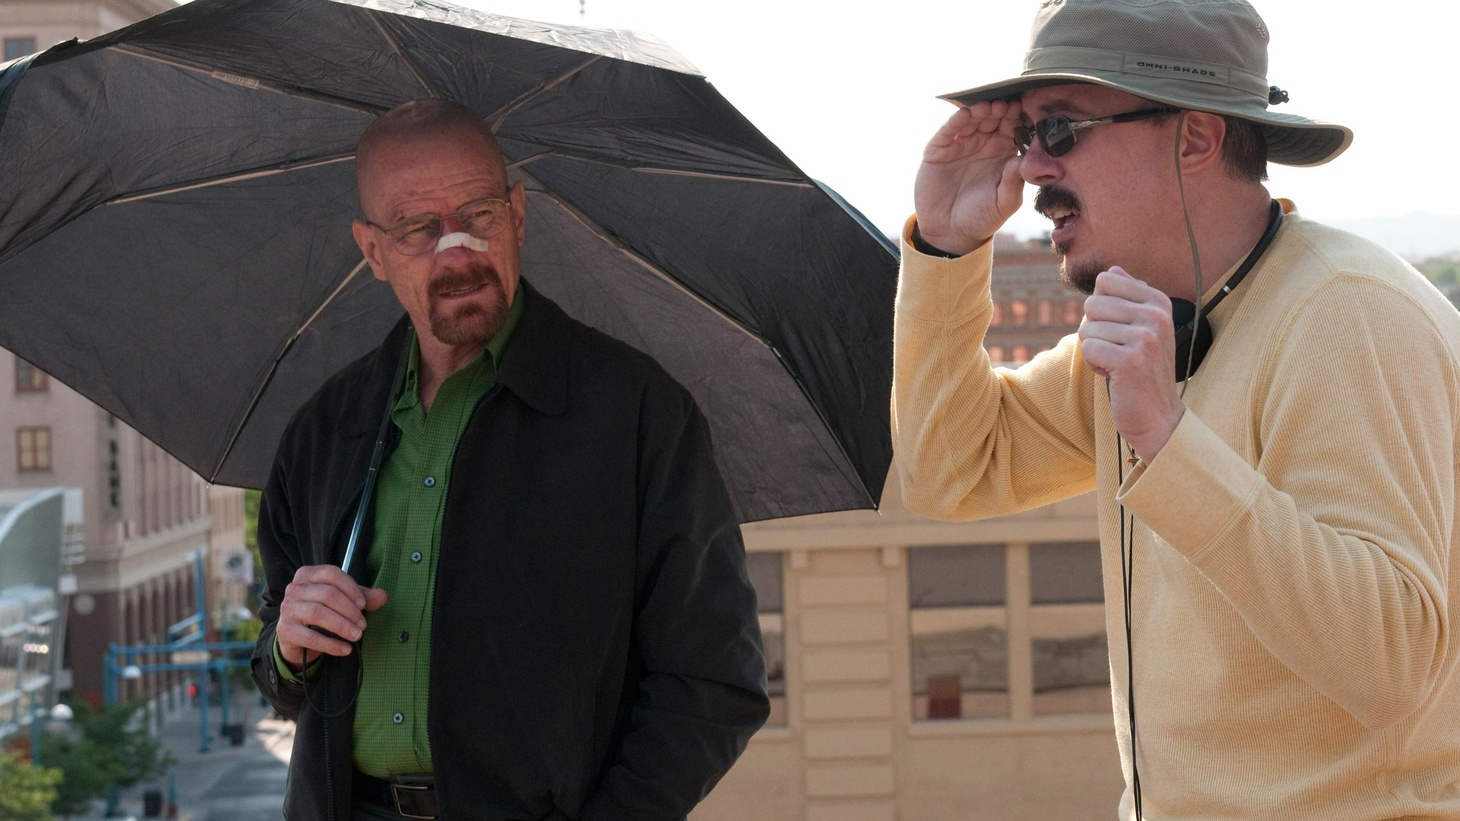 'Breaking Bad' Creator Vince Gilligan says to be a show-runner you need to be a cult leader and that the idea that there's a rivalry between his show and 'Mad Men' is false.